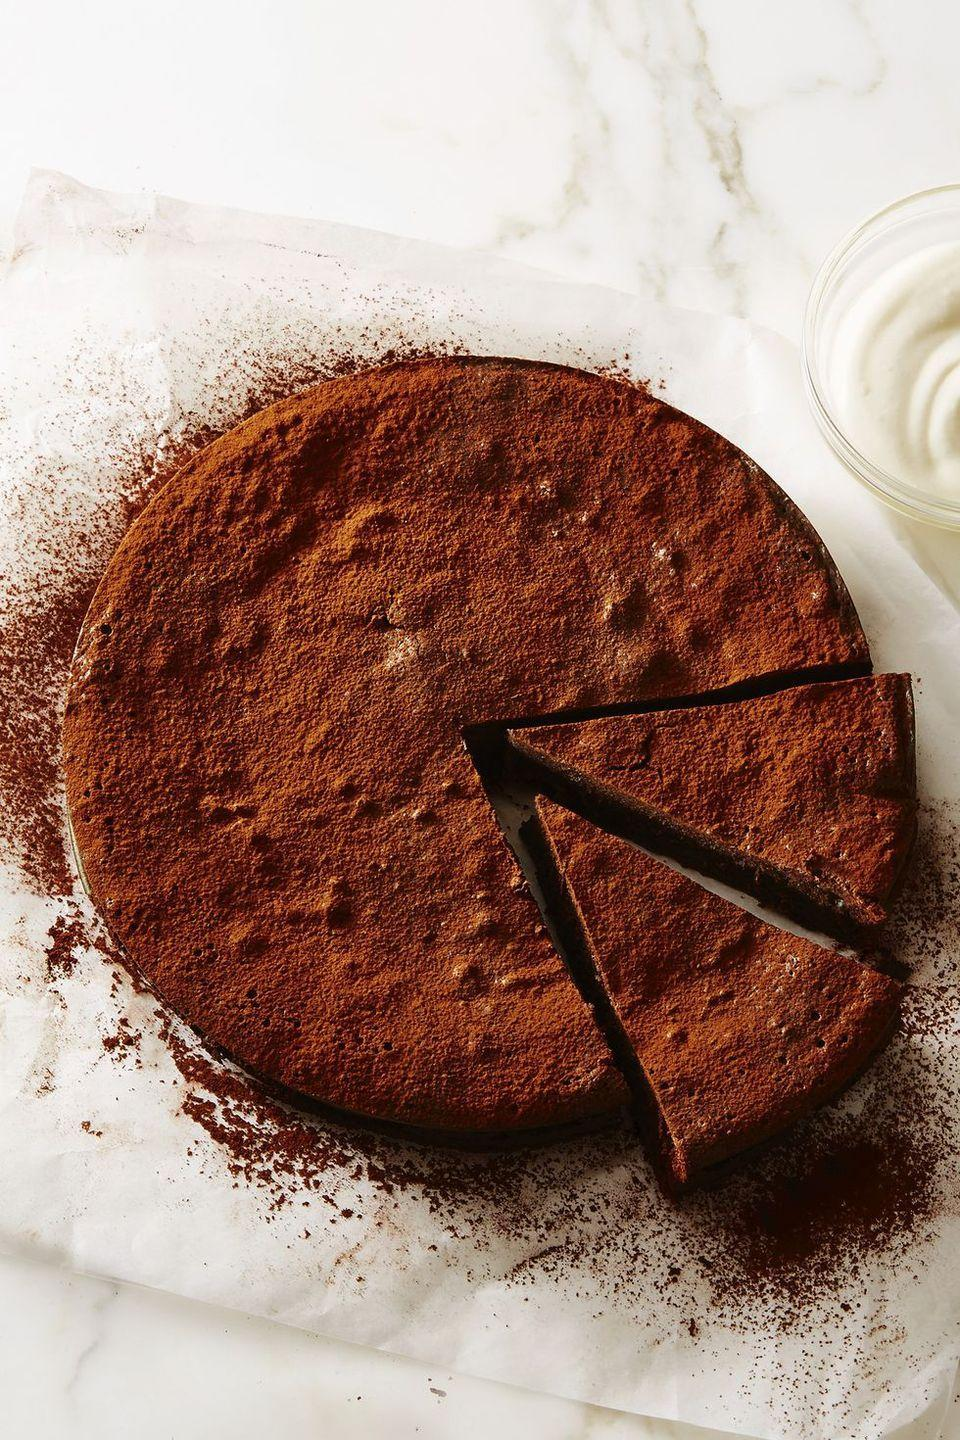 "<p>This chocolate cake is intense — in a good way, of course. It's also gluten free!</p><p><em><a href=""https://www.goodhousekeeping.com/food-recipes/dessert/a48194/flourless-fudge-cake-recipe/"" rel=""nofollow noopener"" target=""_blank"" data-ylk=""slk:Get the recipe for Flourless Fudge Cake »"" class=""link rapid-noclick-resp"">Get the recipe for Flourless Fudge Cake »</a></em><br></p>"